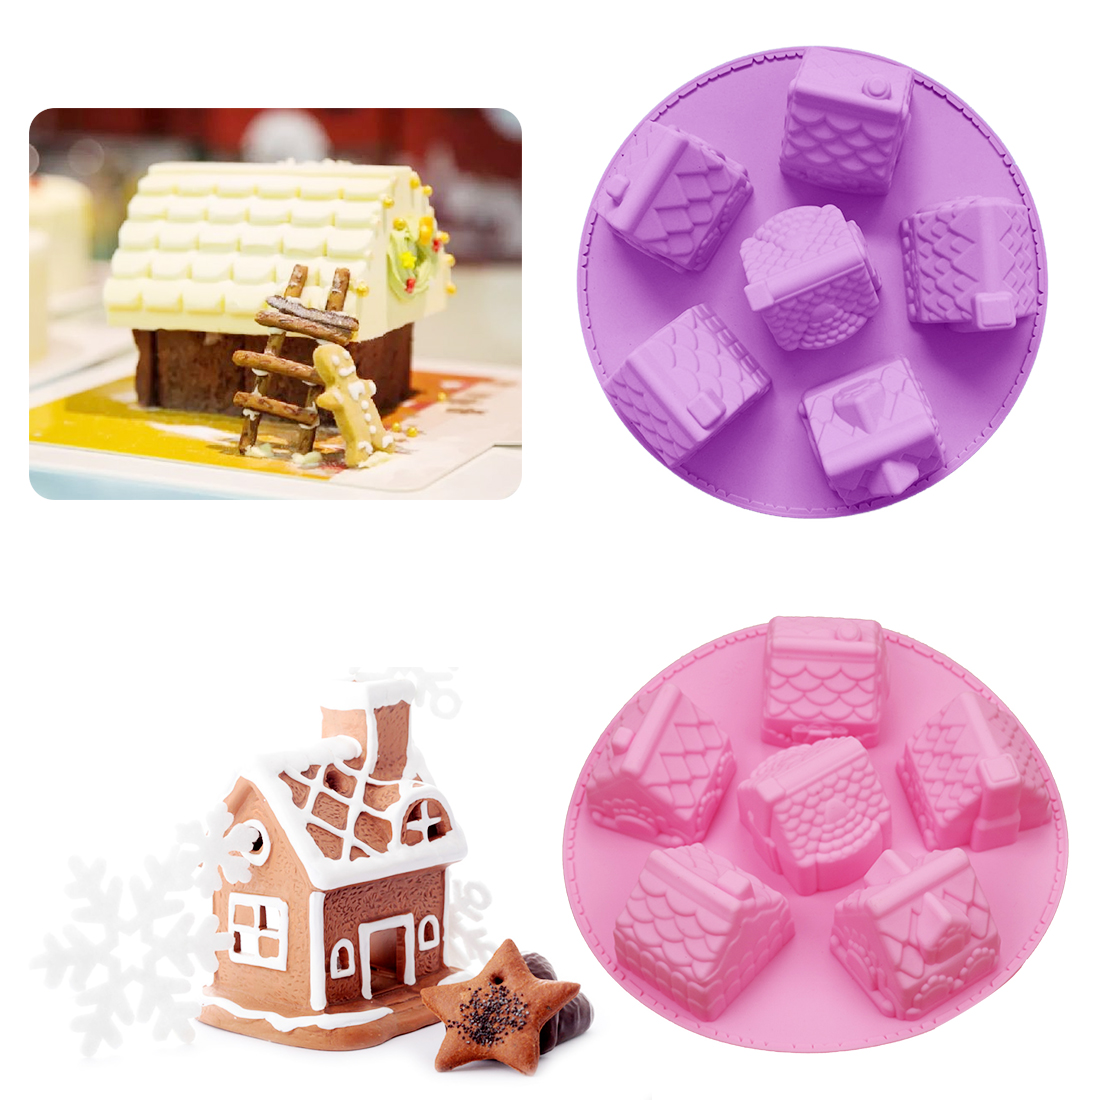 Baking & Pastry Tools Original Engdash 1pc 8 Holes Cylindrical Food Grade Silicone Cake Mould Jelly Pudding Cake Mold Diy For Kitchen Bakeware High Quality High Quality Kitchen,dining & Bar